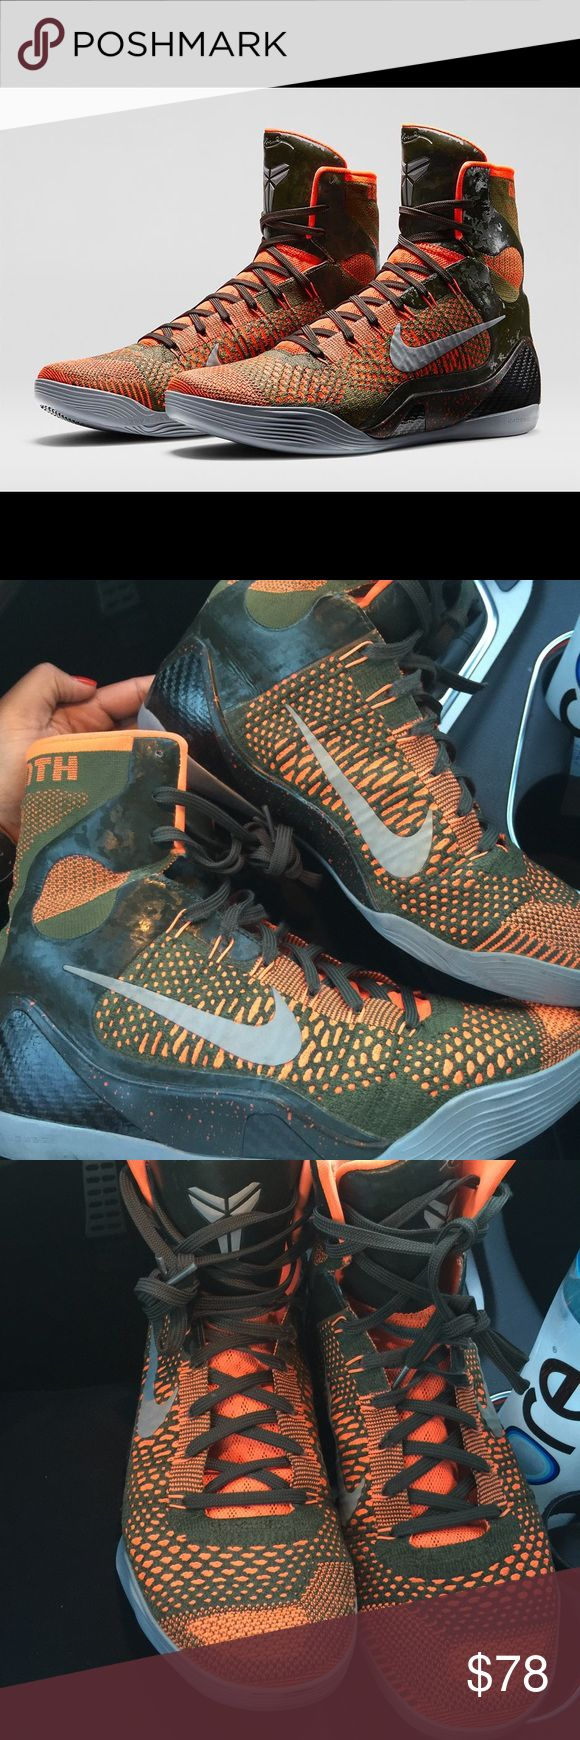 Kobe 9 High Elite Orange Sequoia Black Green Really good condition! Worn only indoors! Great grip ! Nike Shoes Sneakers